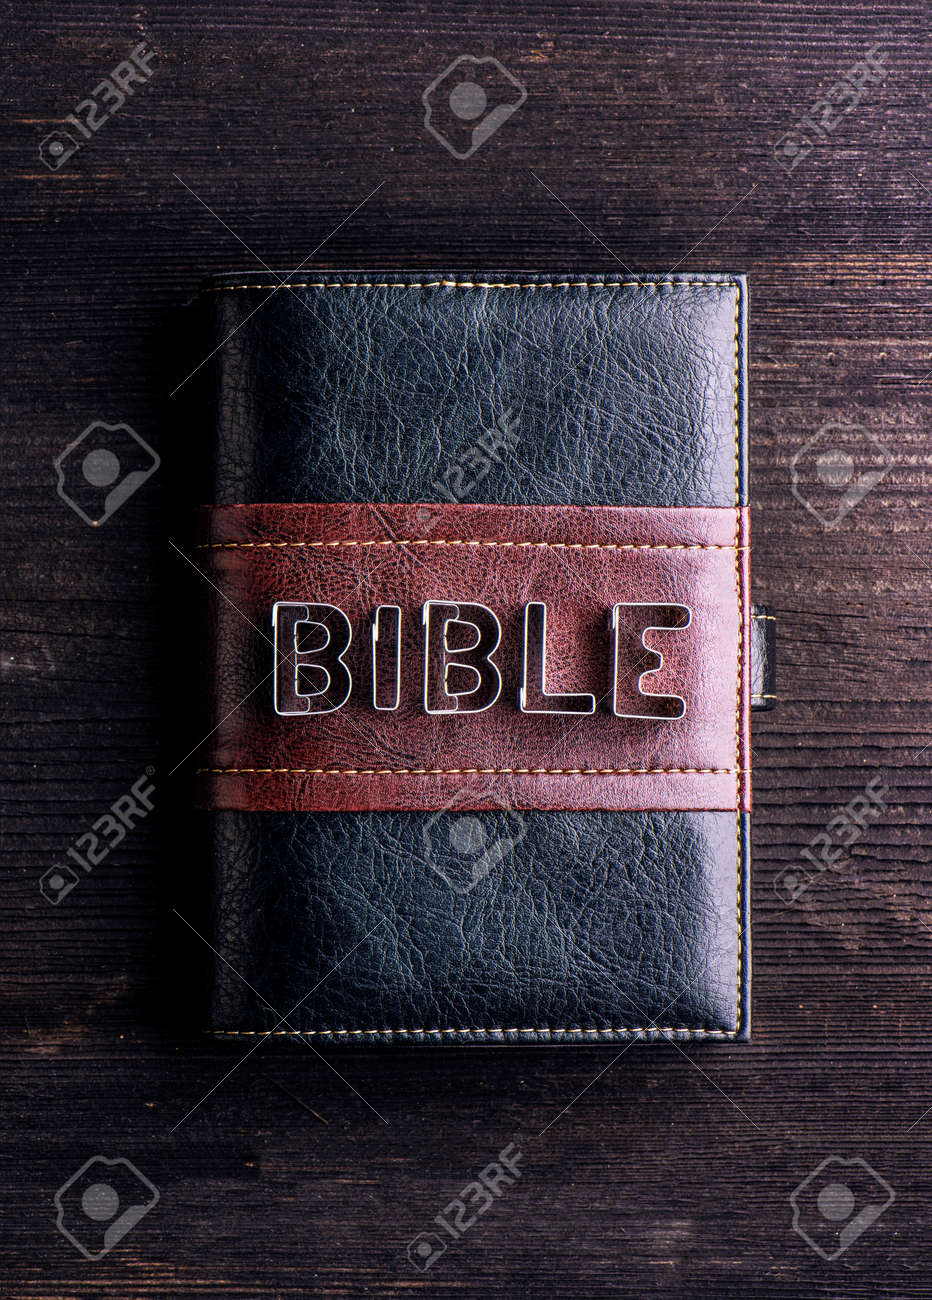 bible in leather book cover laid on old wooden table sign made